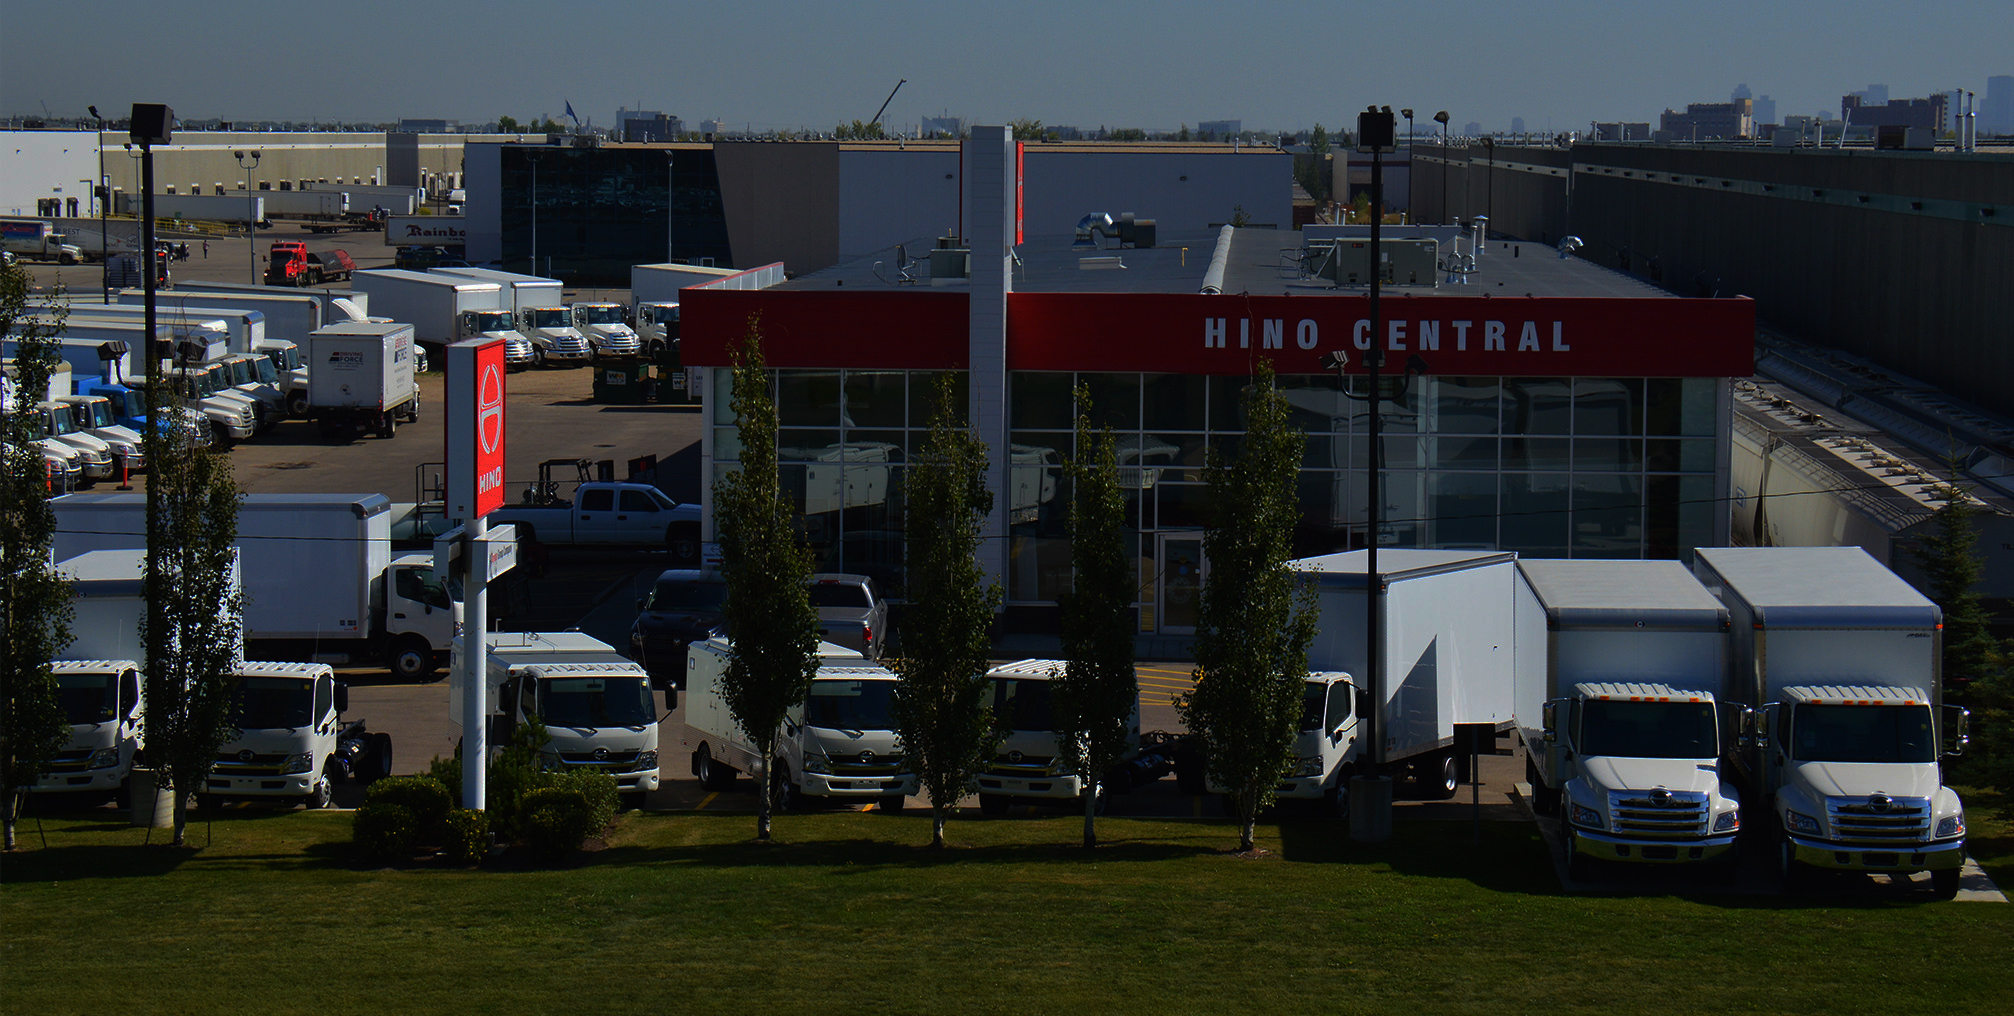 Conveniently located in west Edmonton, Hino Central features highway access and plenty of parking.